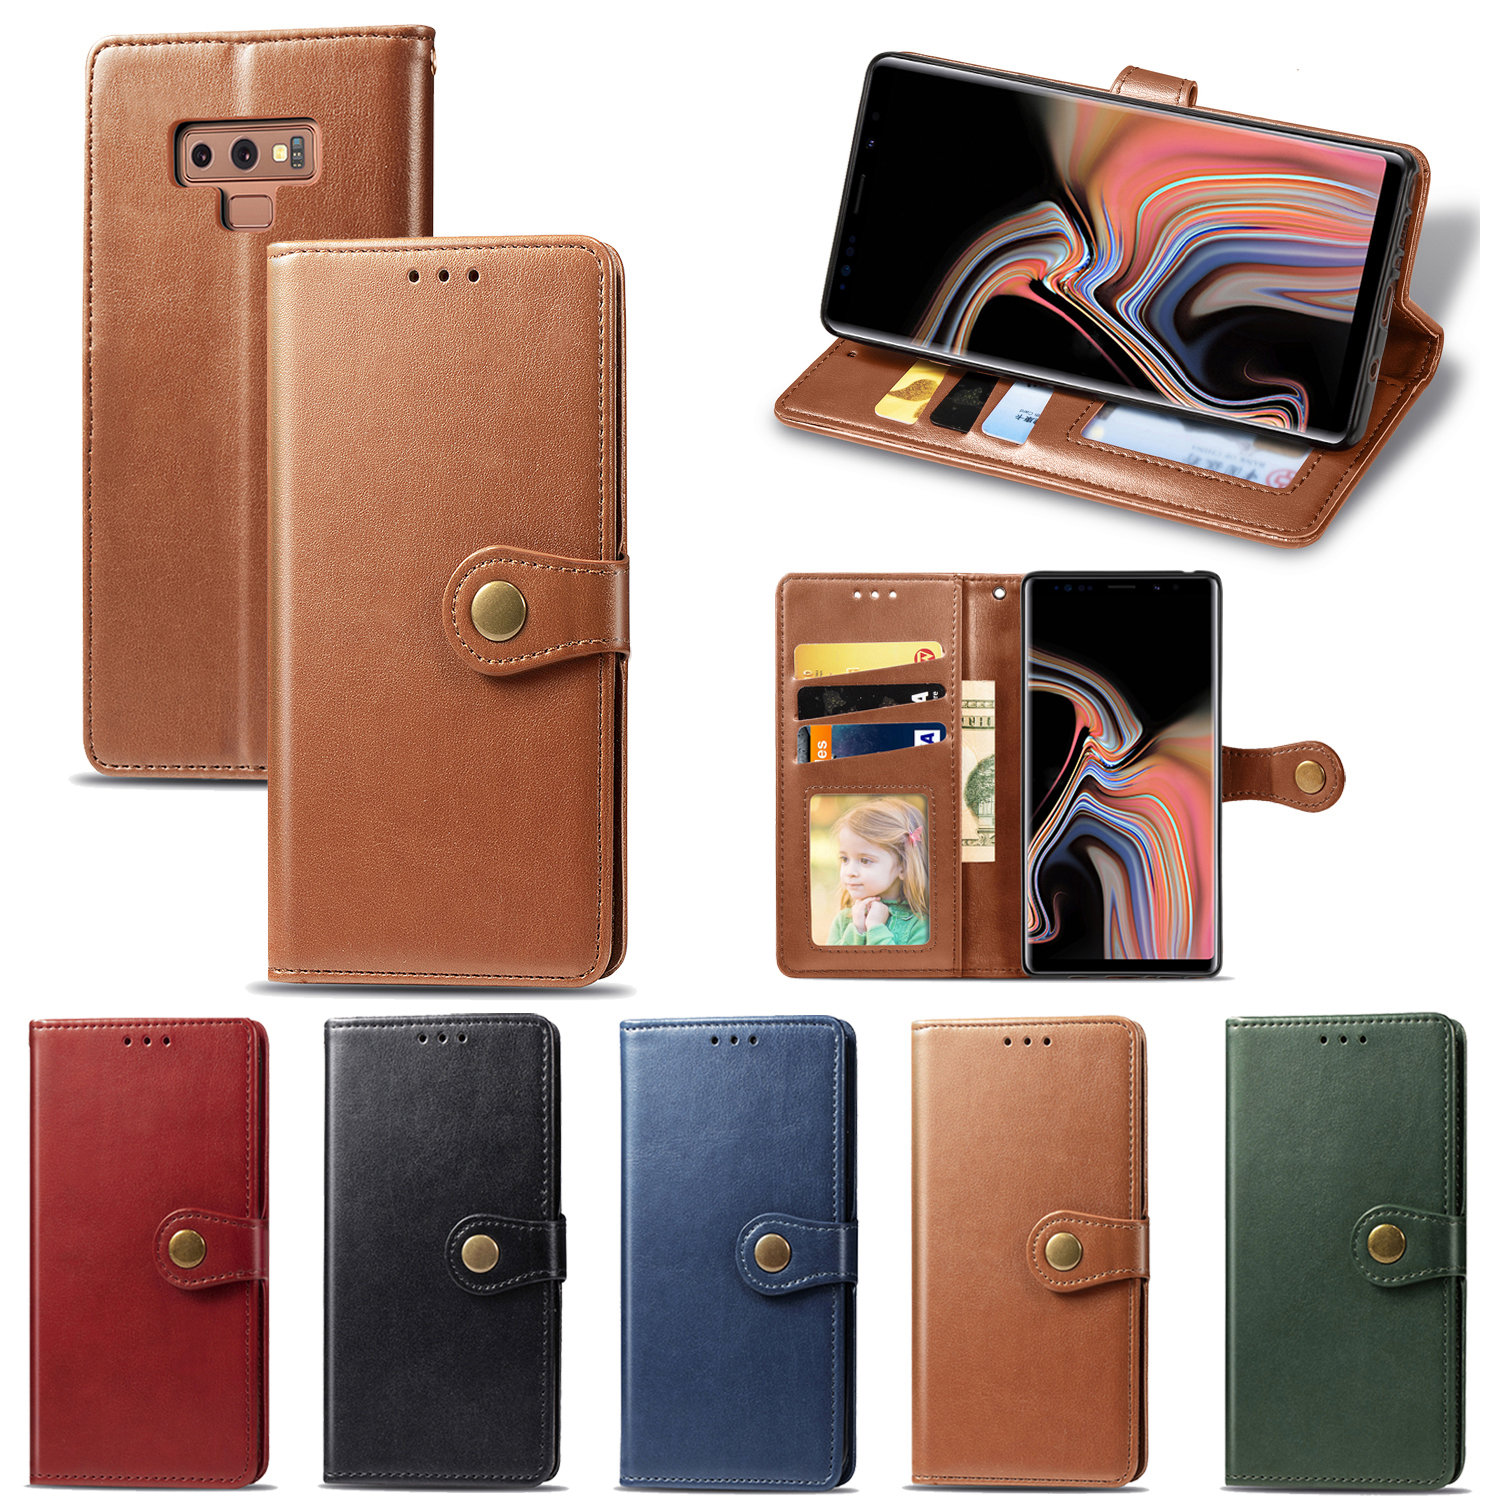 Business Flip Leather Wallet Cover Case For Samsung Galaxy A10 A20 A40 A50 A70 M10 S8 S9 S10e S10 Plus Note 8 9 10 Pro Lite